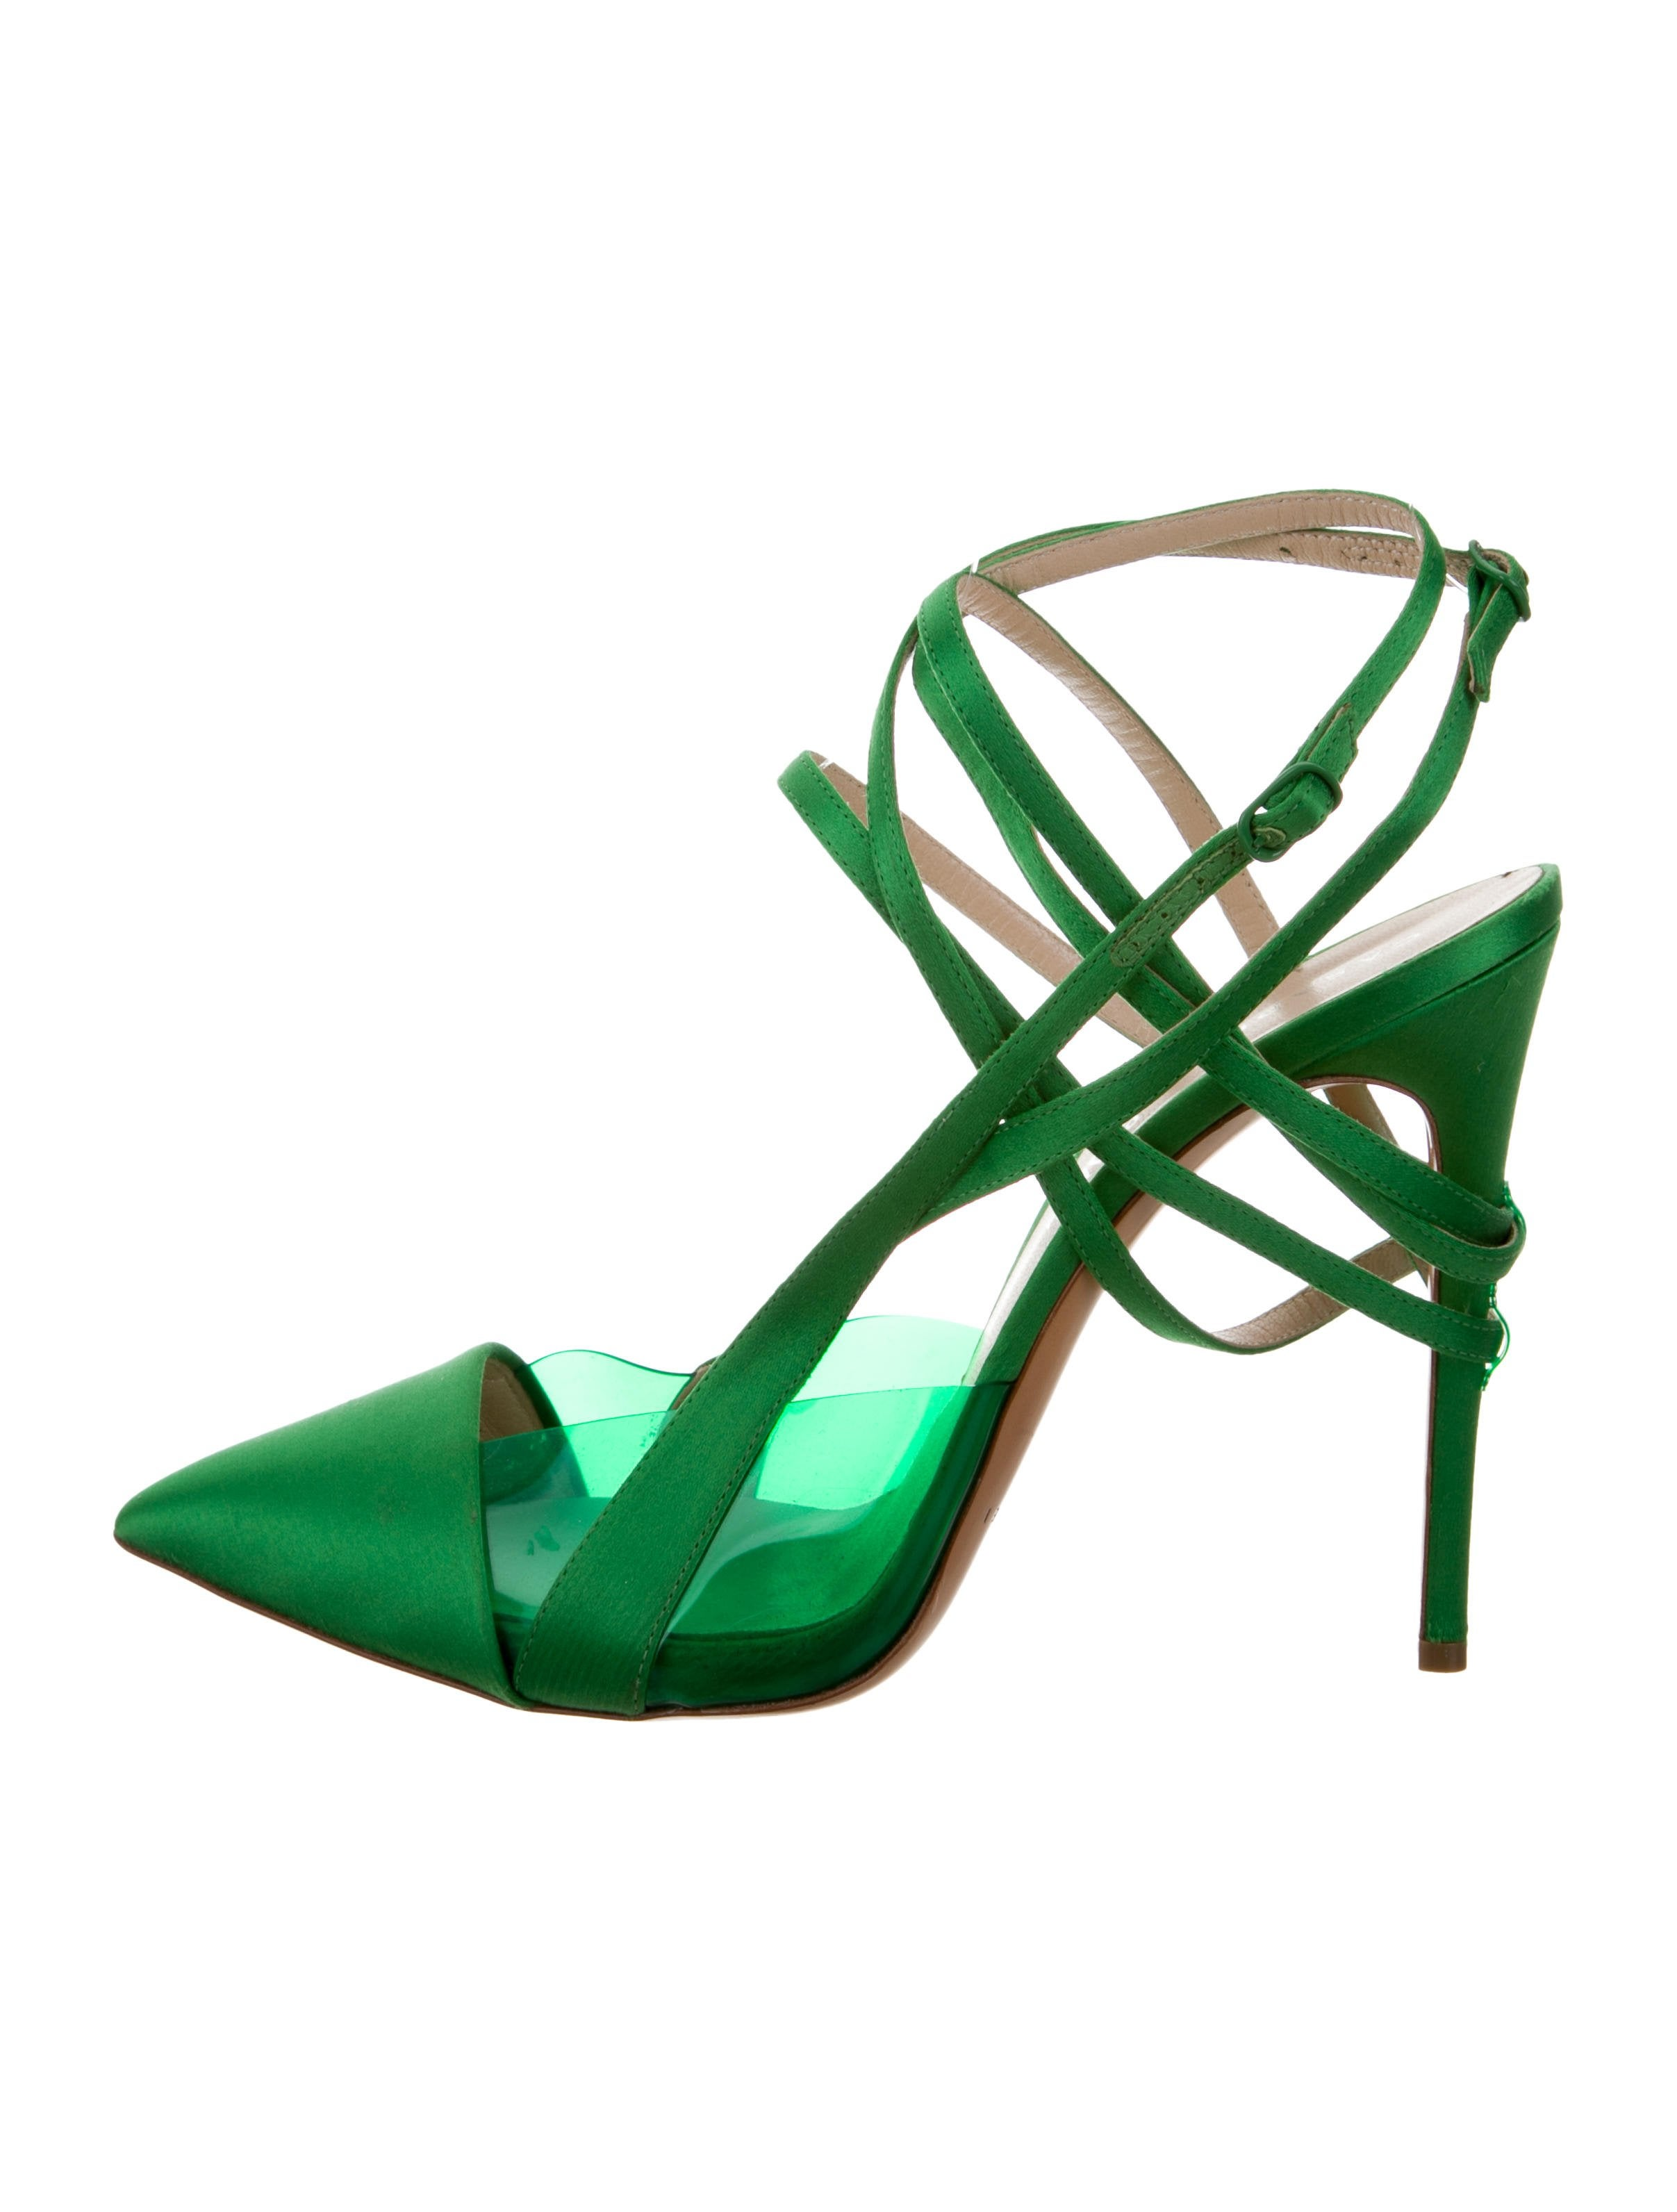 Casadei x Prabal Gurung Satin PVC-Accented Pumps supply cheap online outlet visa payment othxKf